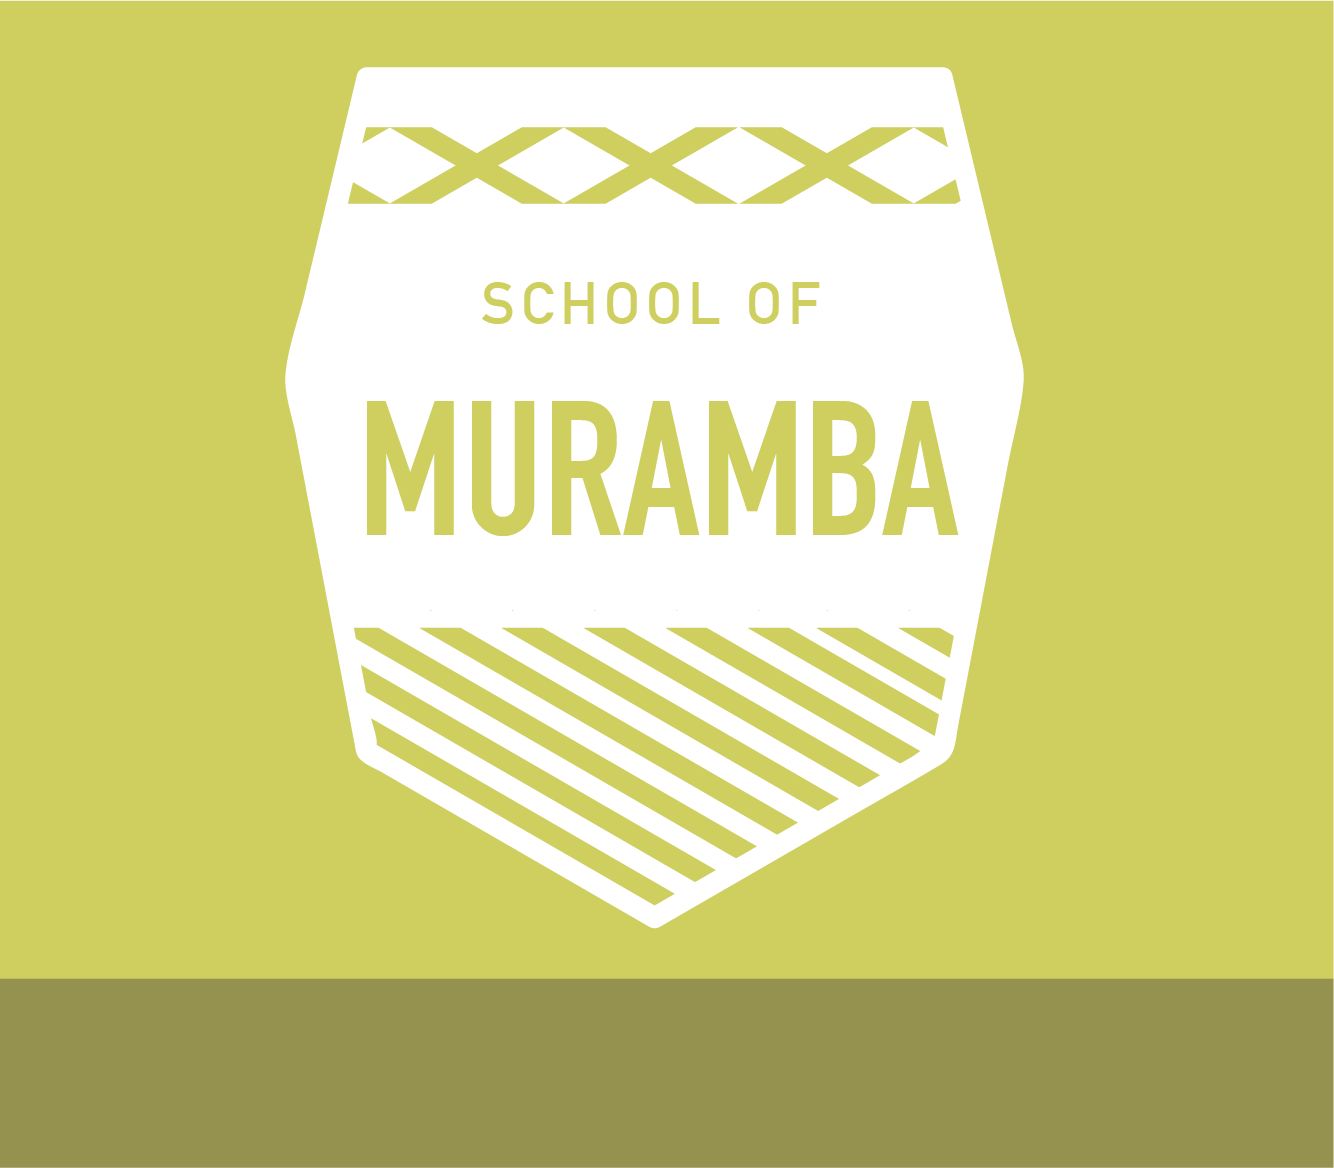 School of muramba